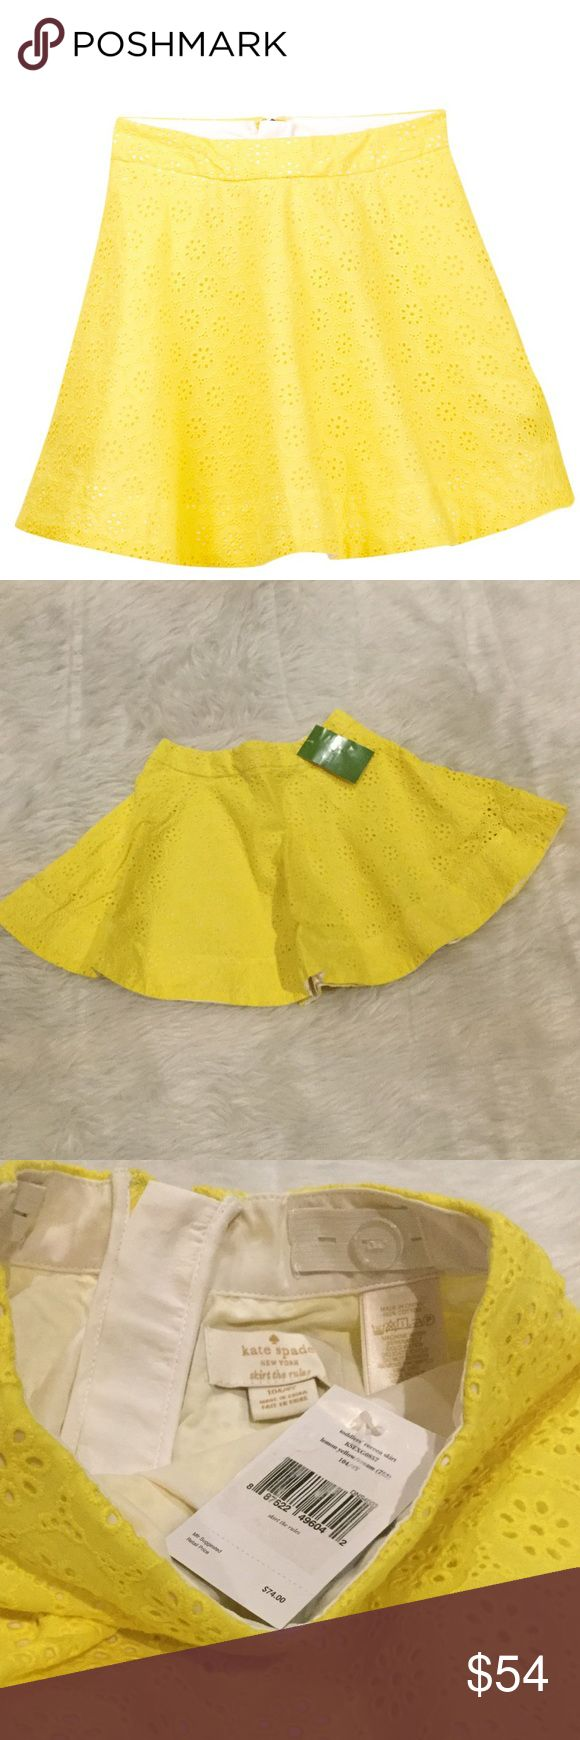 NWT Kate Spade Girl's Coreen Skirt Classic bold hue eyelets detail a charming cotton skirt.  Back zip closure.  Allover Ruffle eyelet construction.  Solid lining.  Color: Lemon Yellow/Cream. kate spade Bottoms Skirts